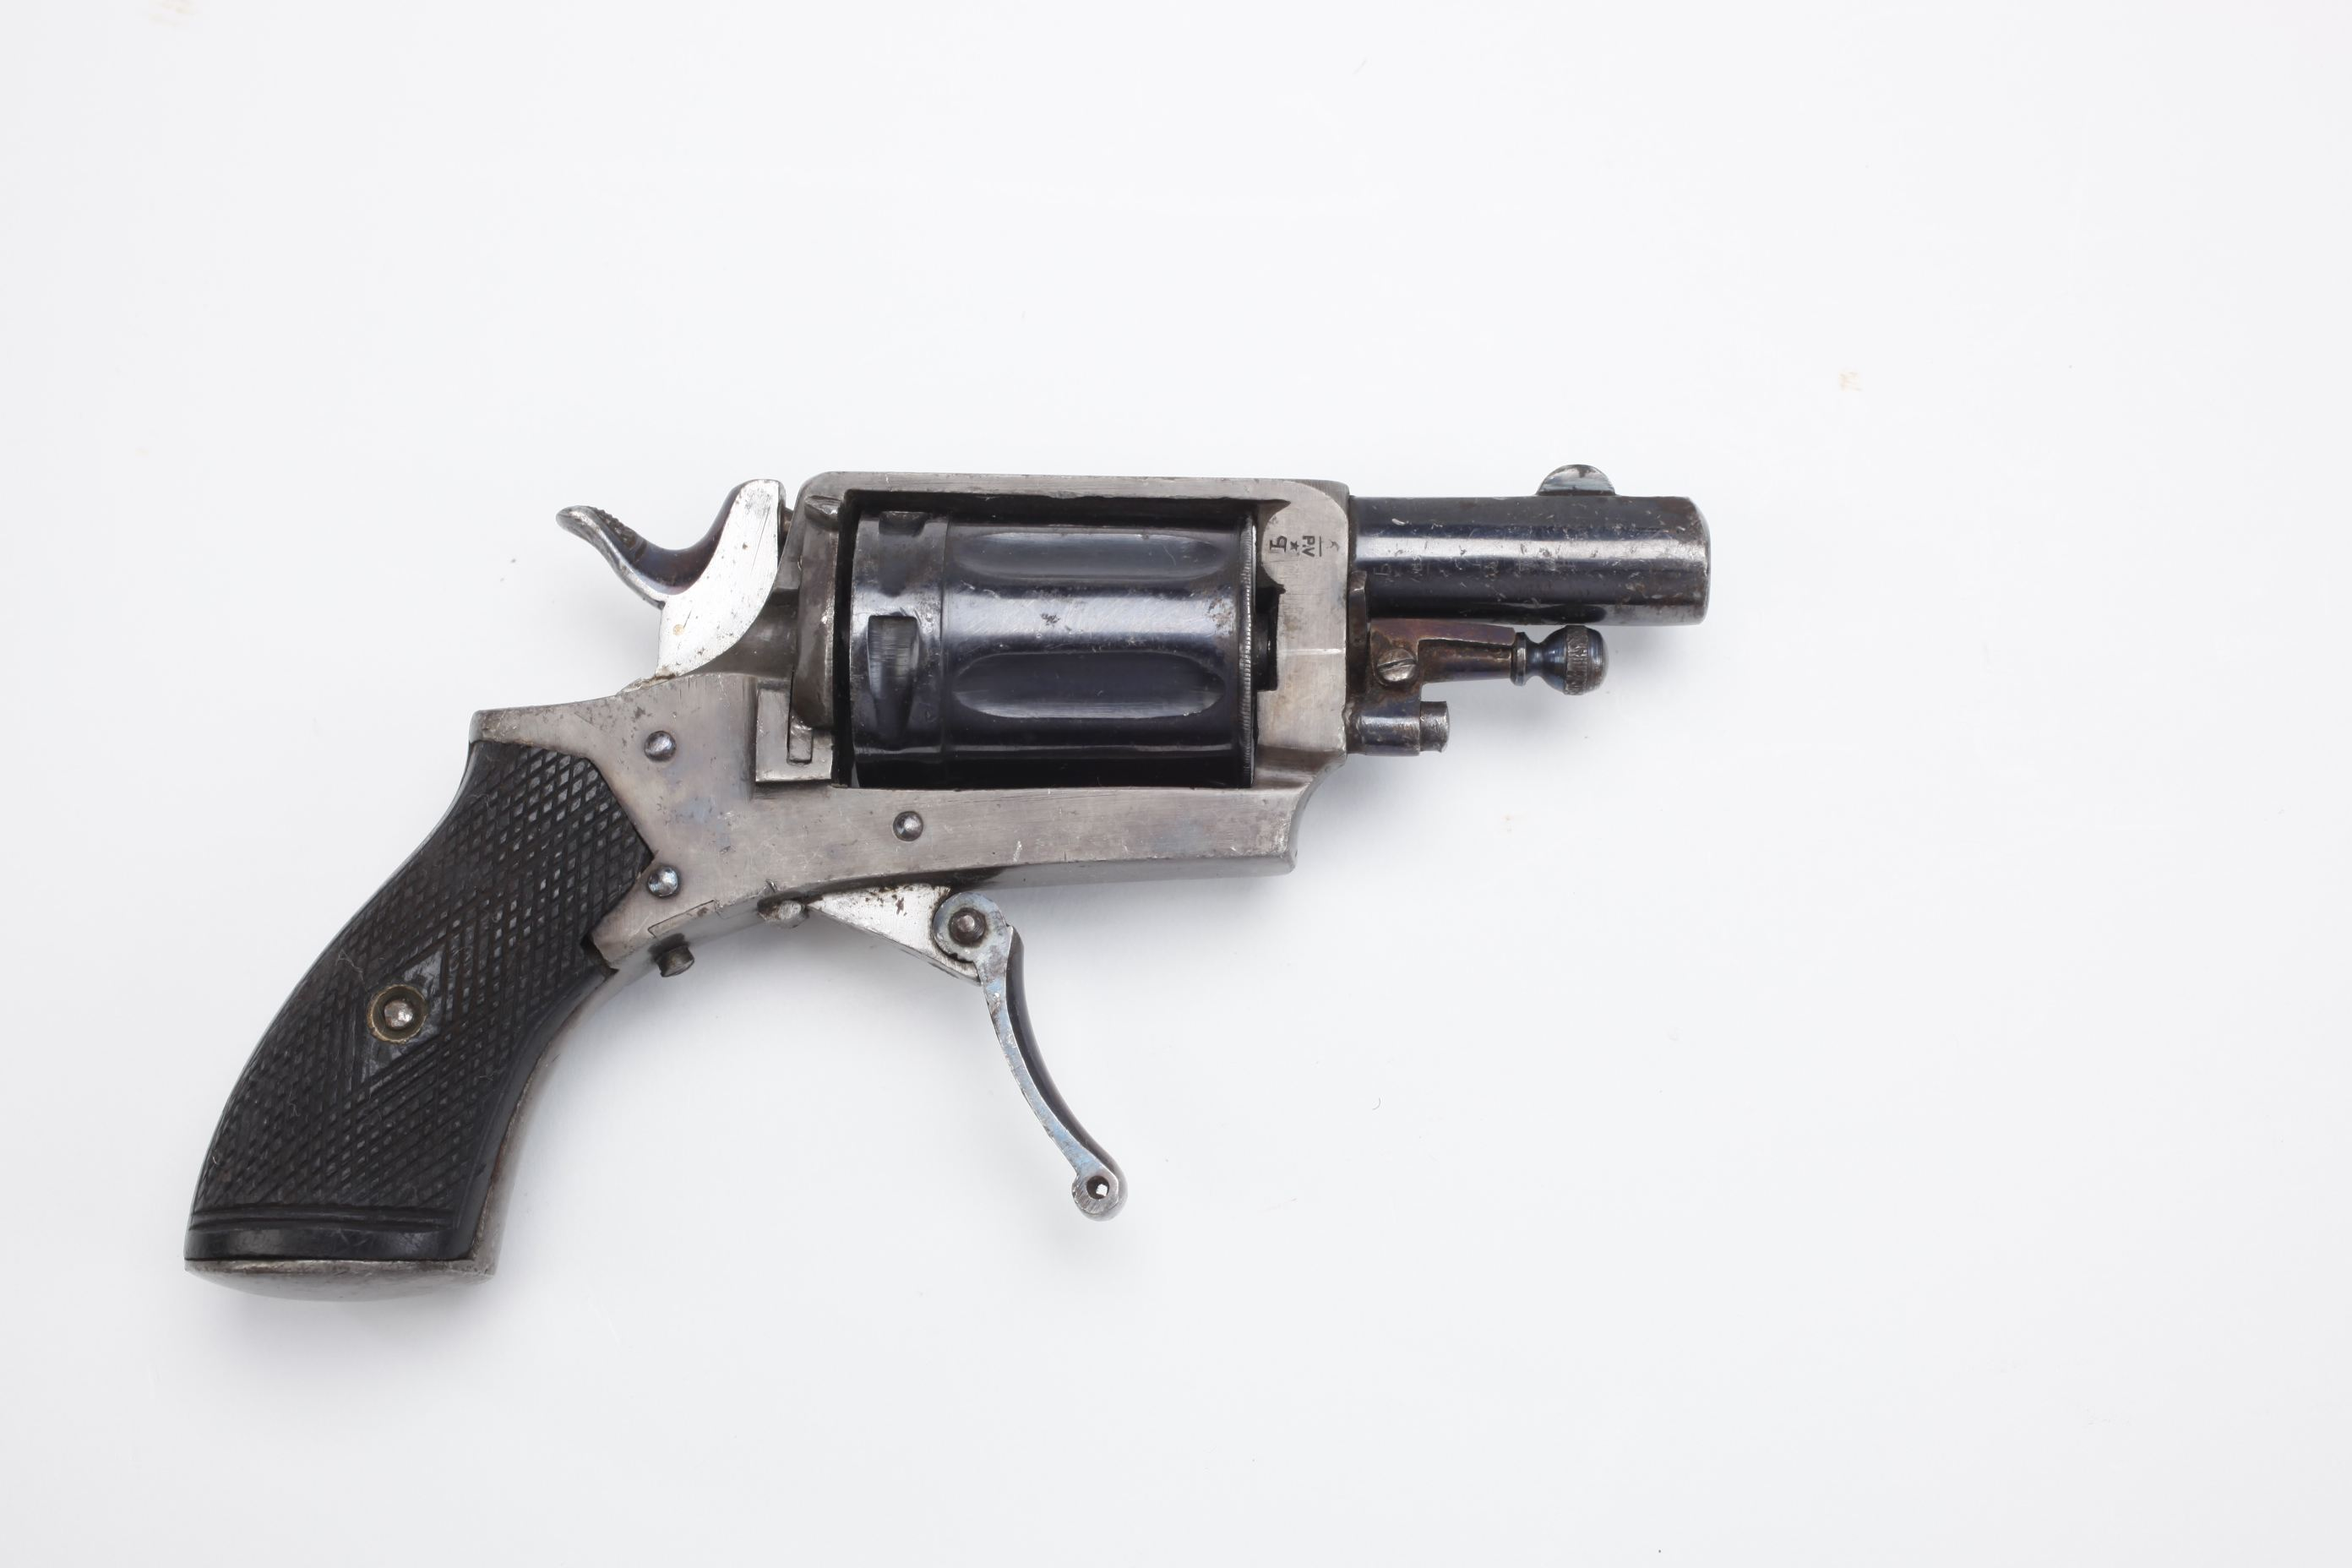 French Velo Dog revolver